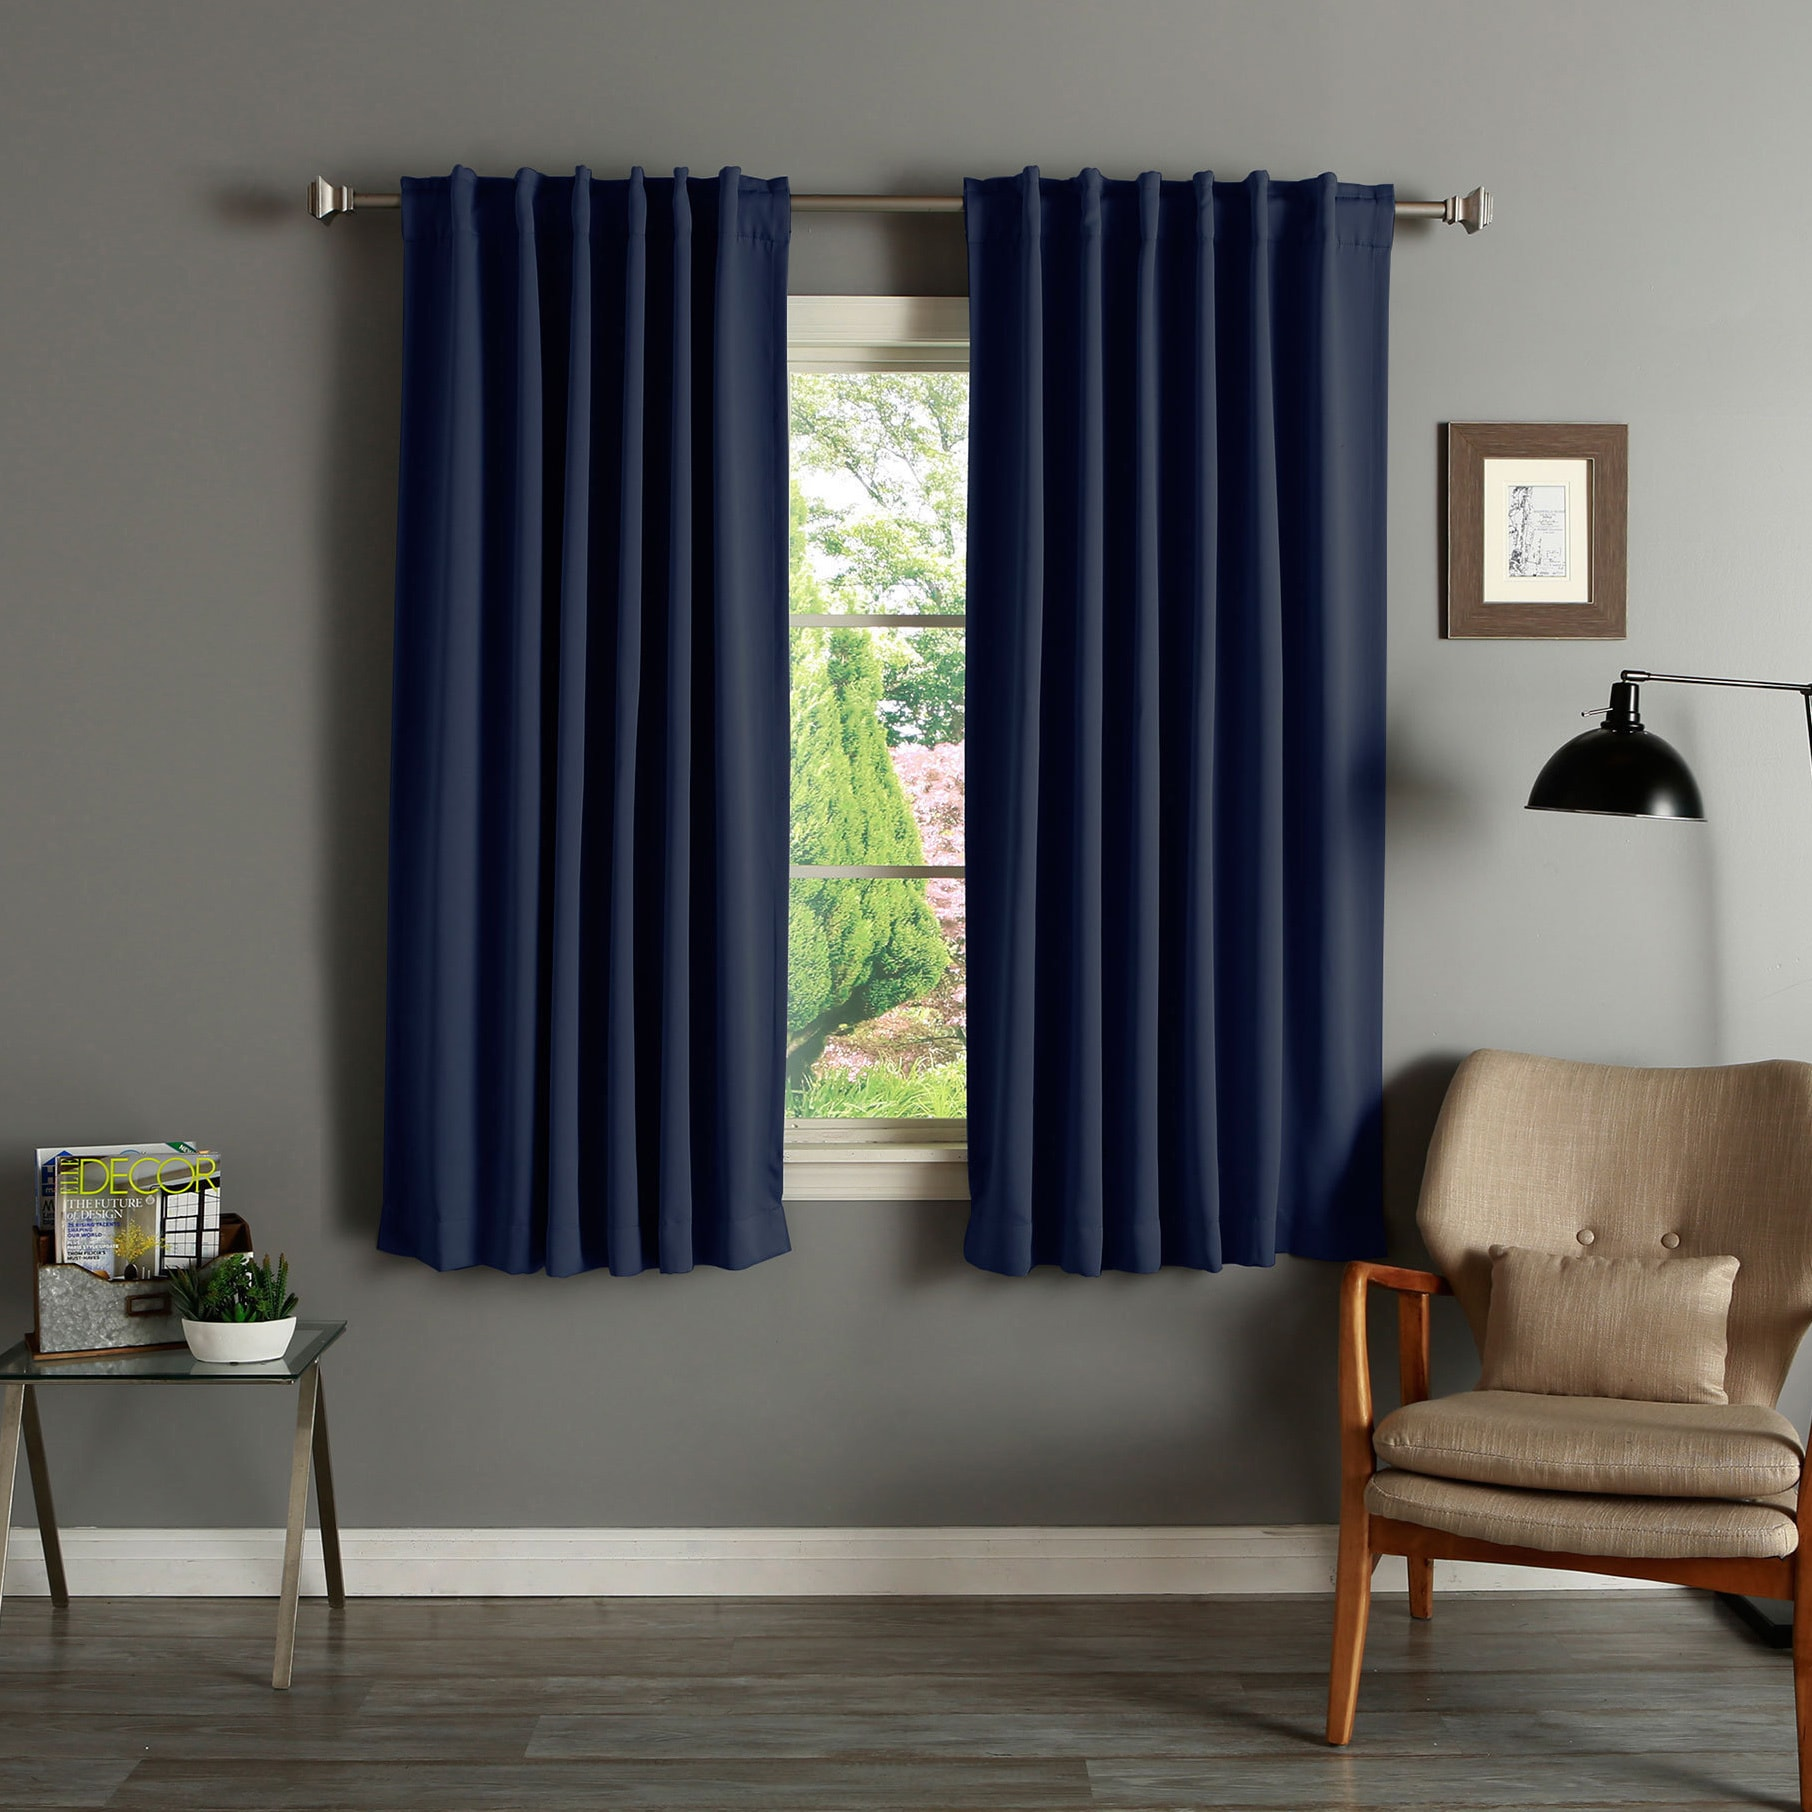 Buy Curtains U0026 Drapes Online At Overstock.com | Our Best Window Treatments  Deals